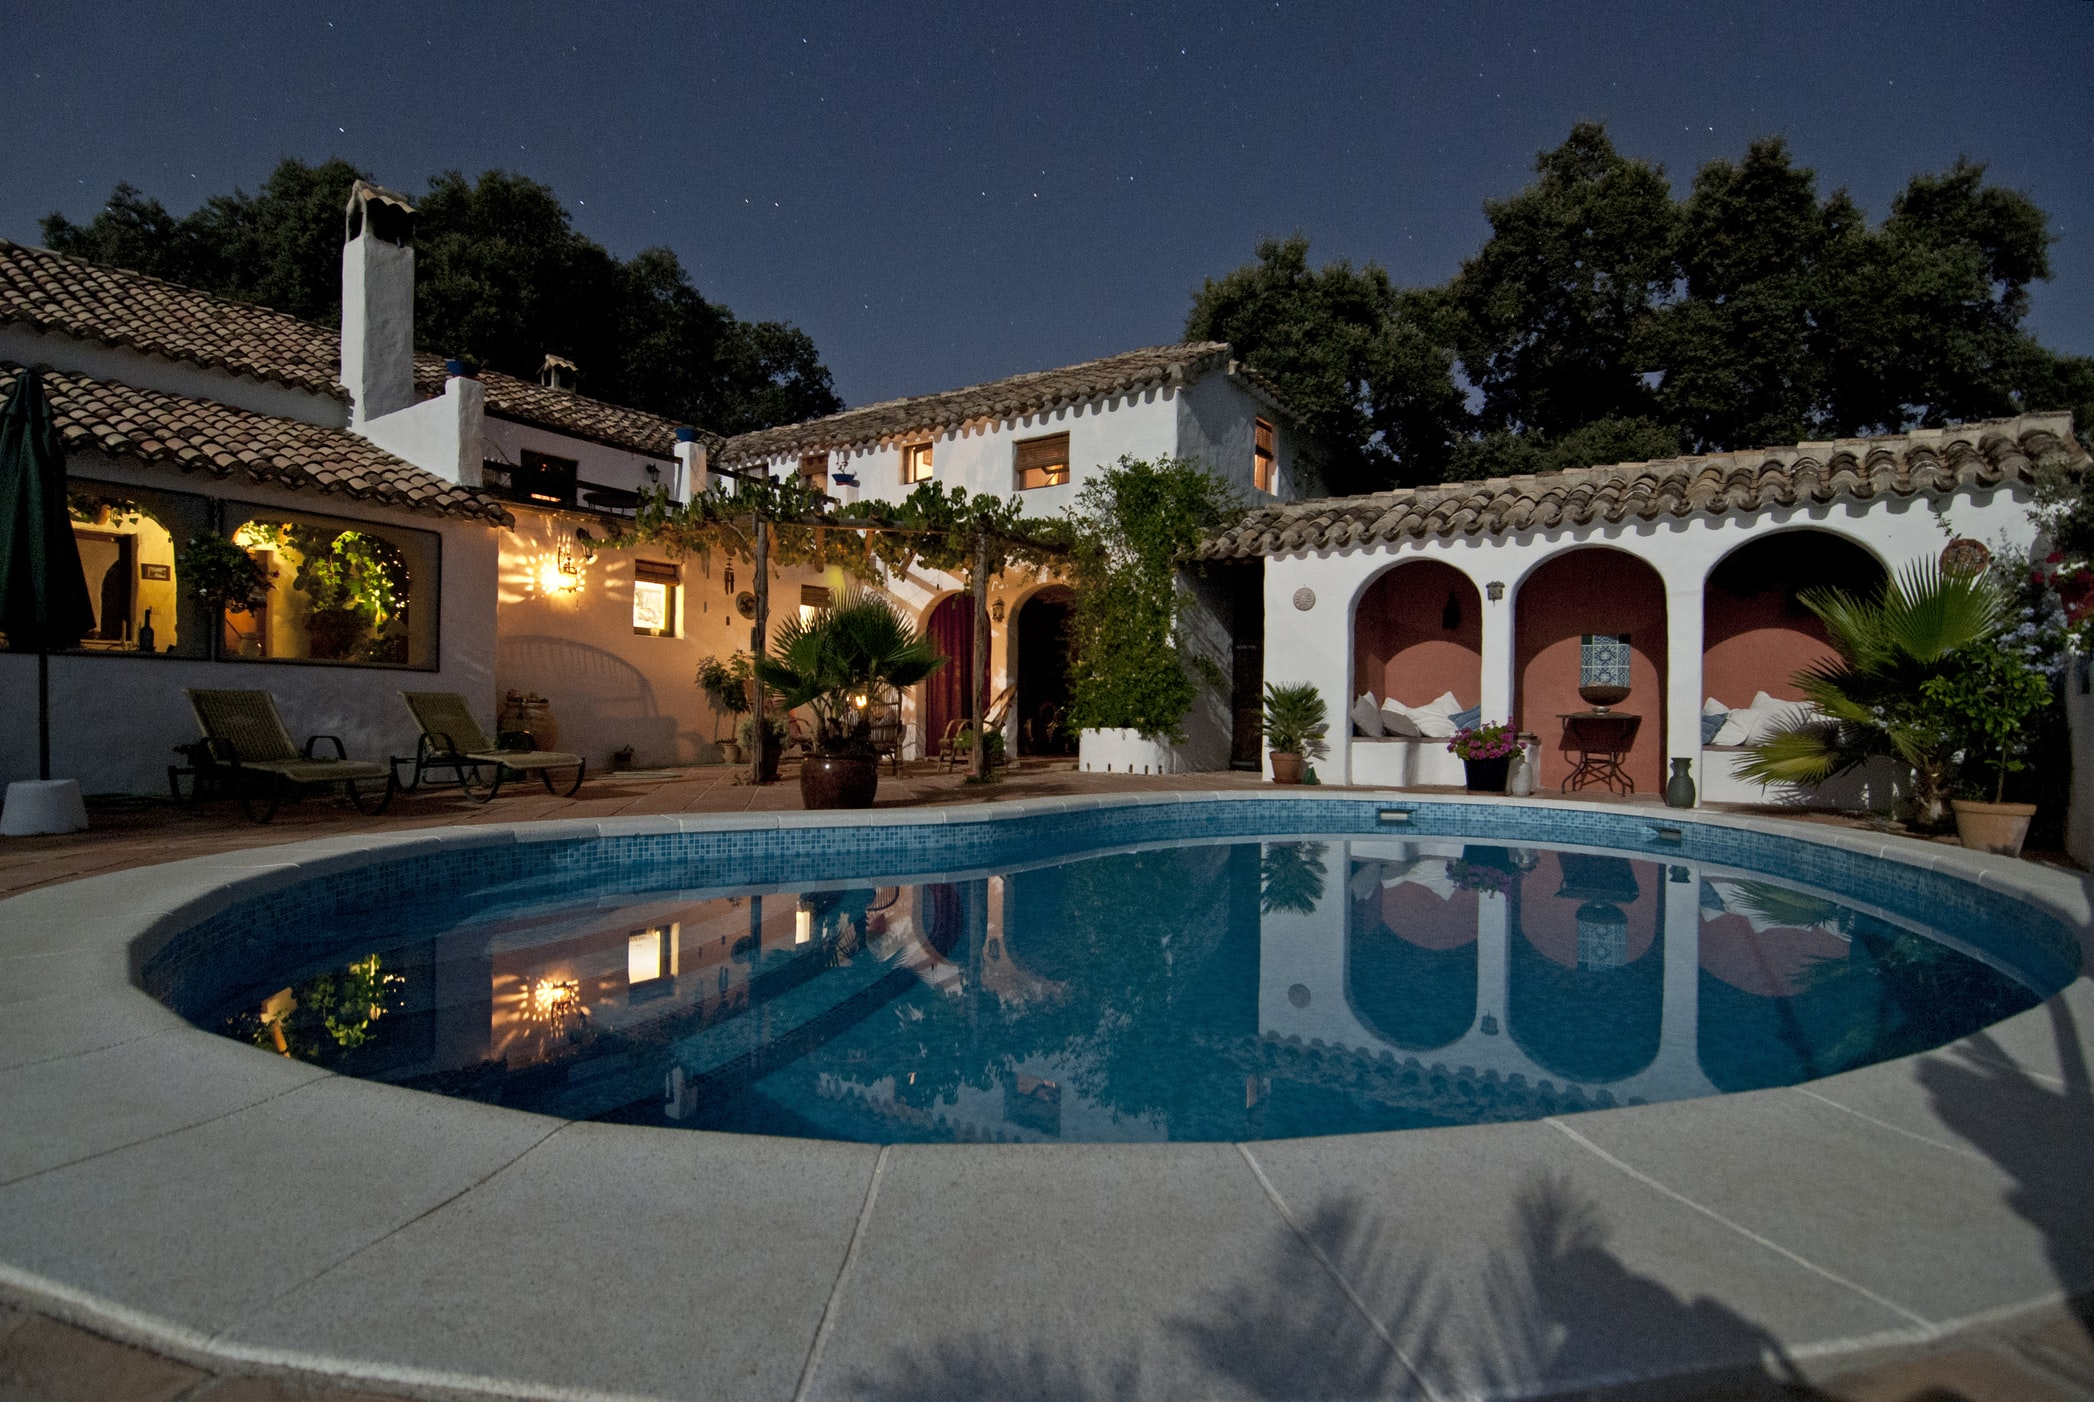 Nice home with a pool at night